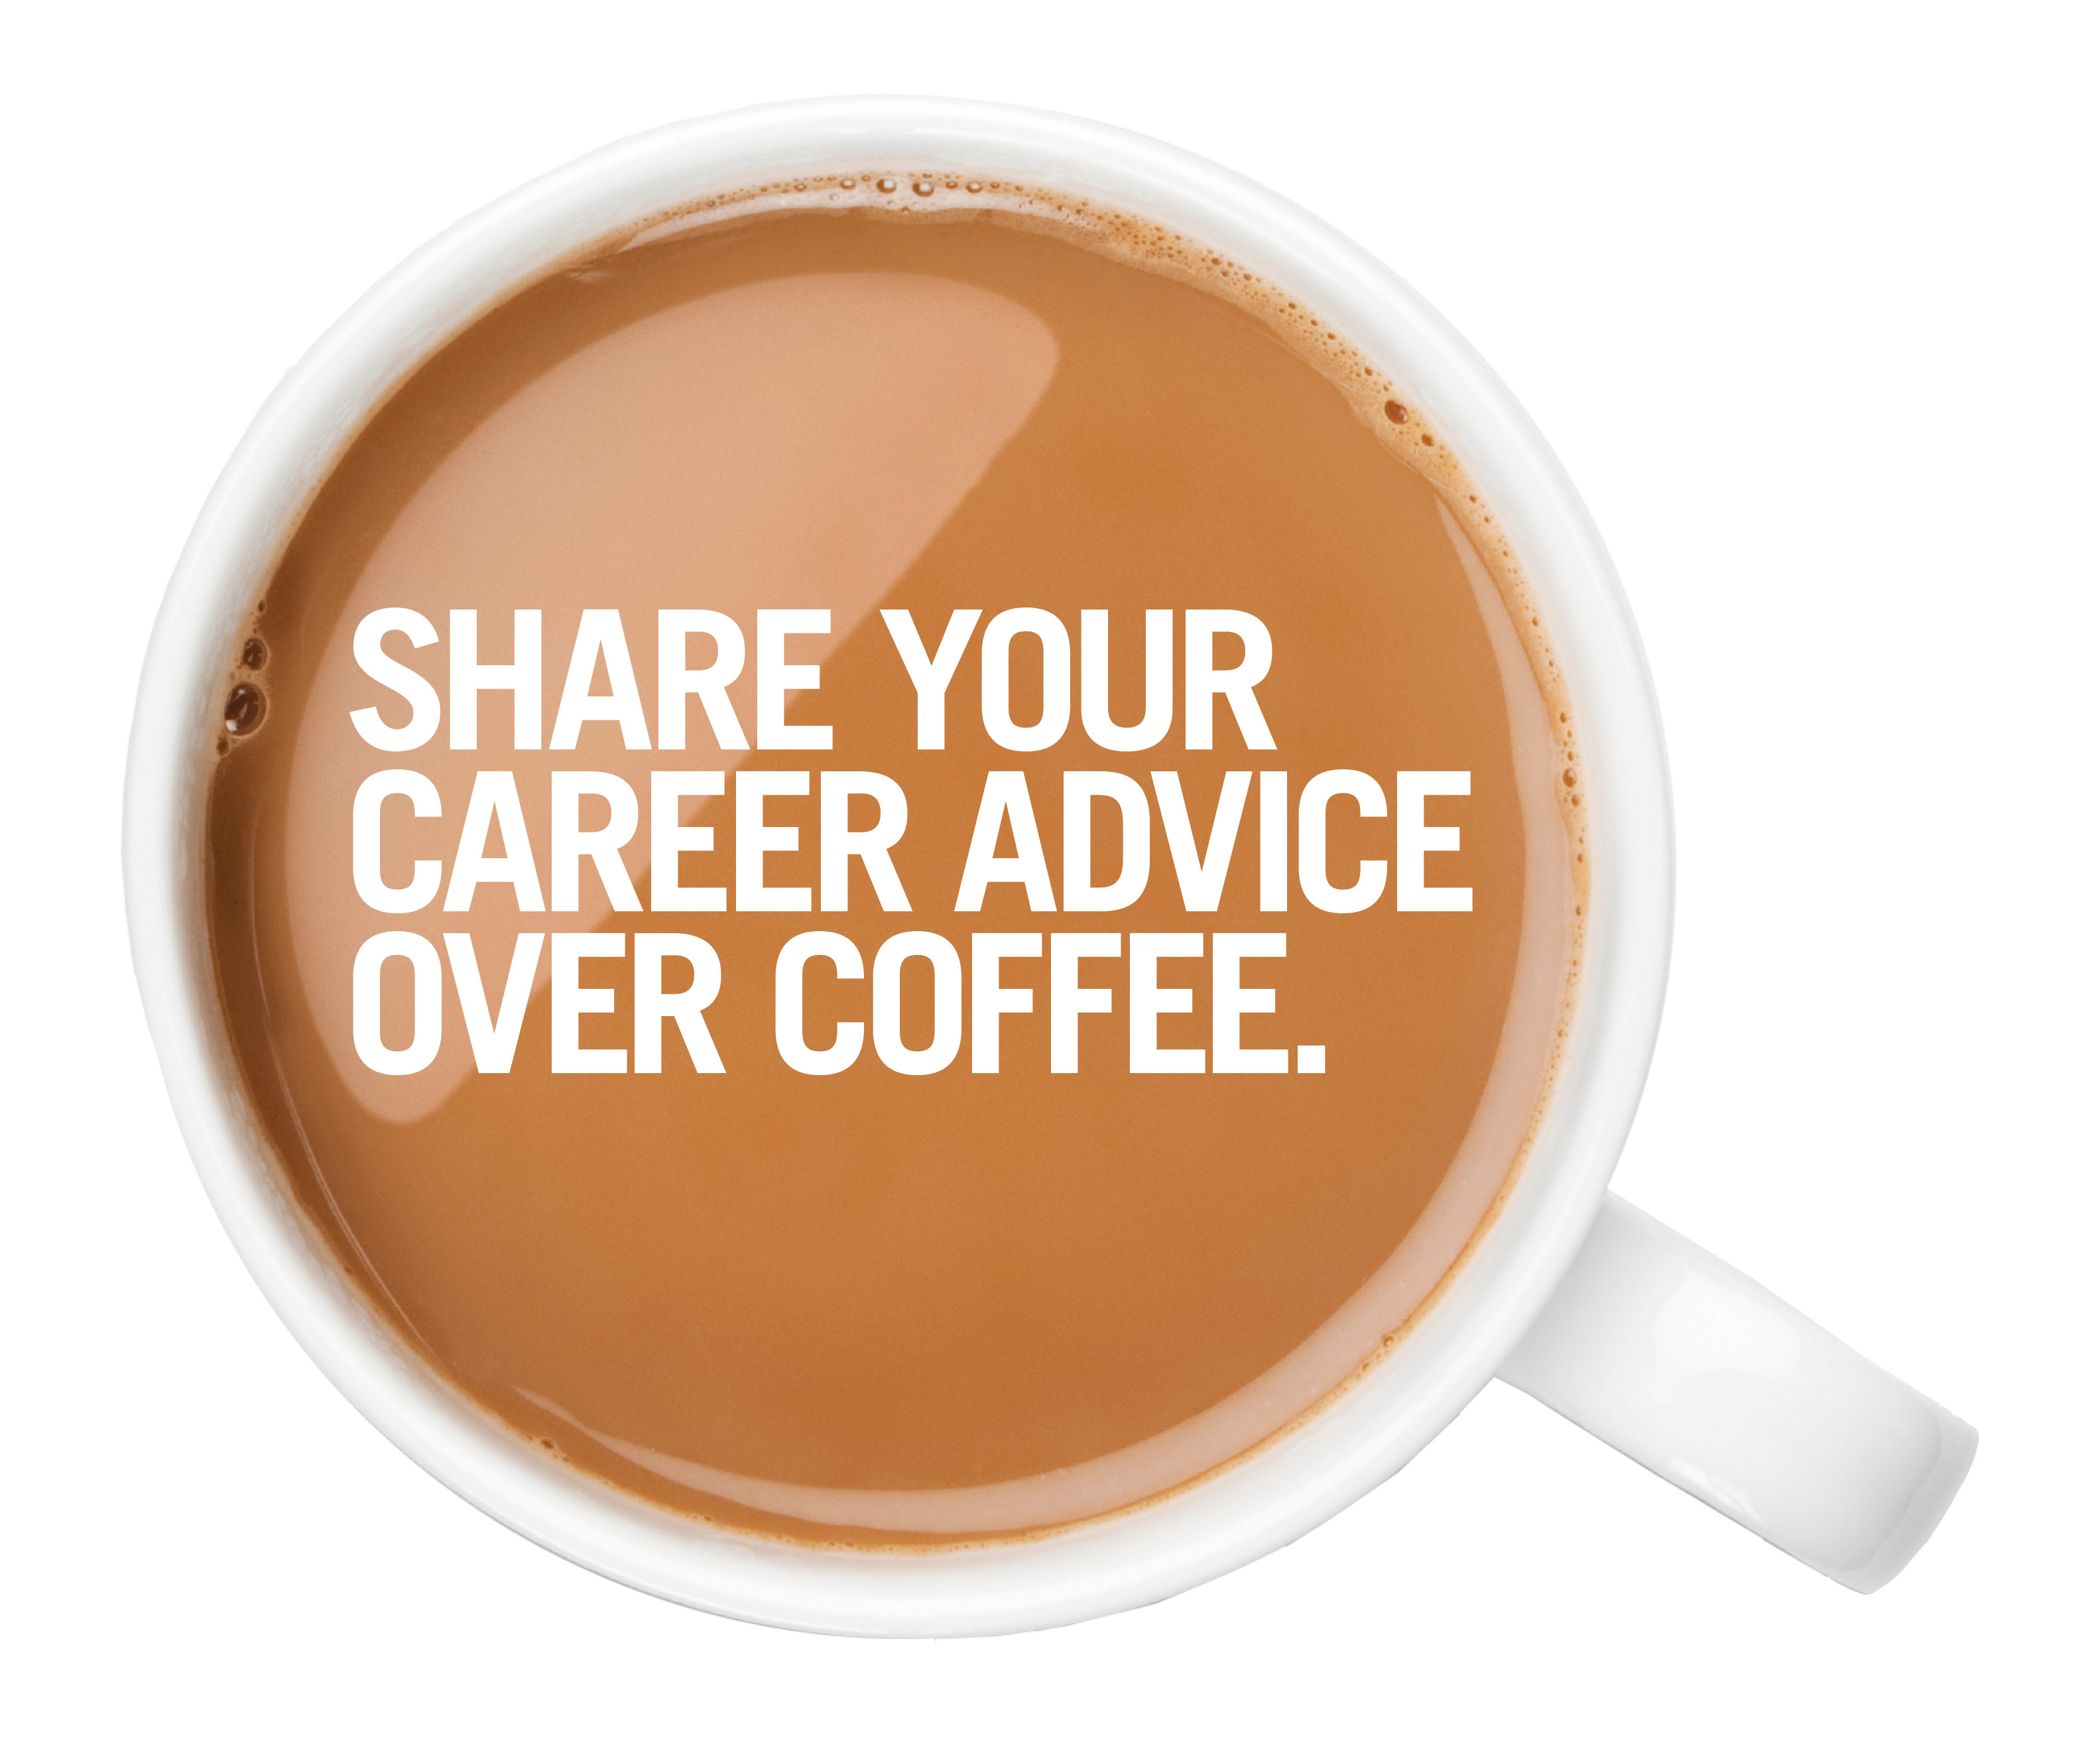 Share your career advice over coffee.